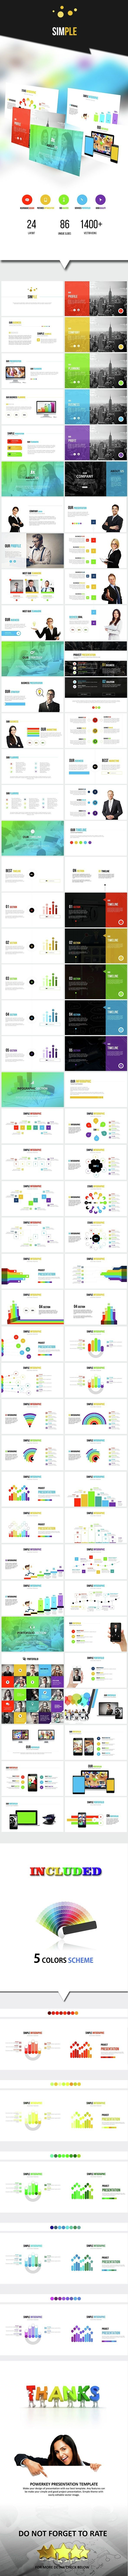 SIMPLE - Powerpoint Business Presentation Template. Download here: http://graphicriver.net/item/simple-powerpoint-business-presentation/15121653?ref=ksioks